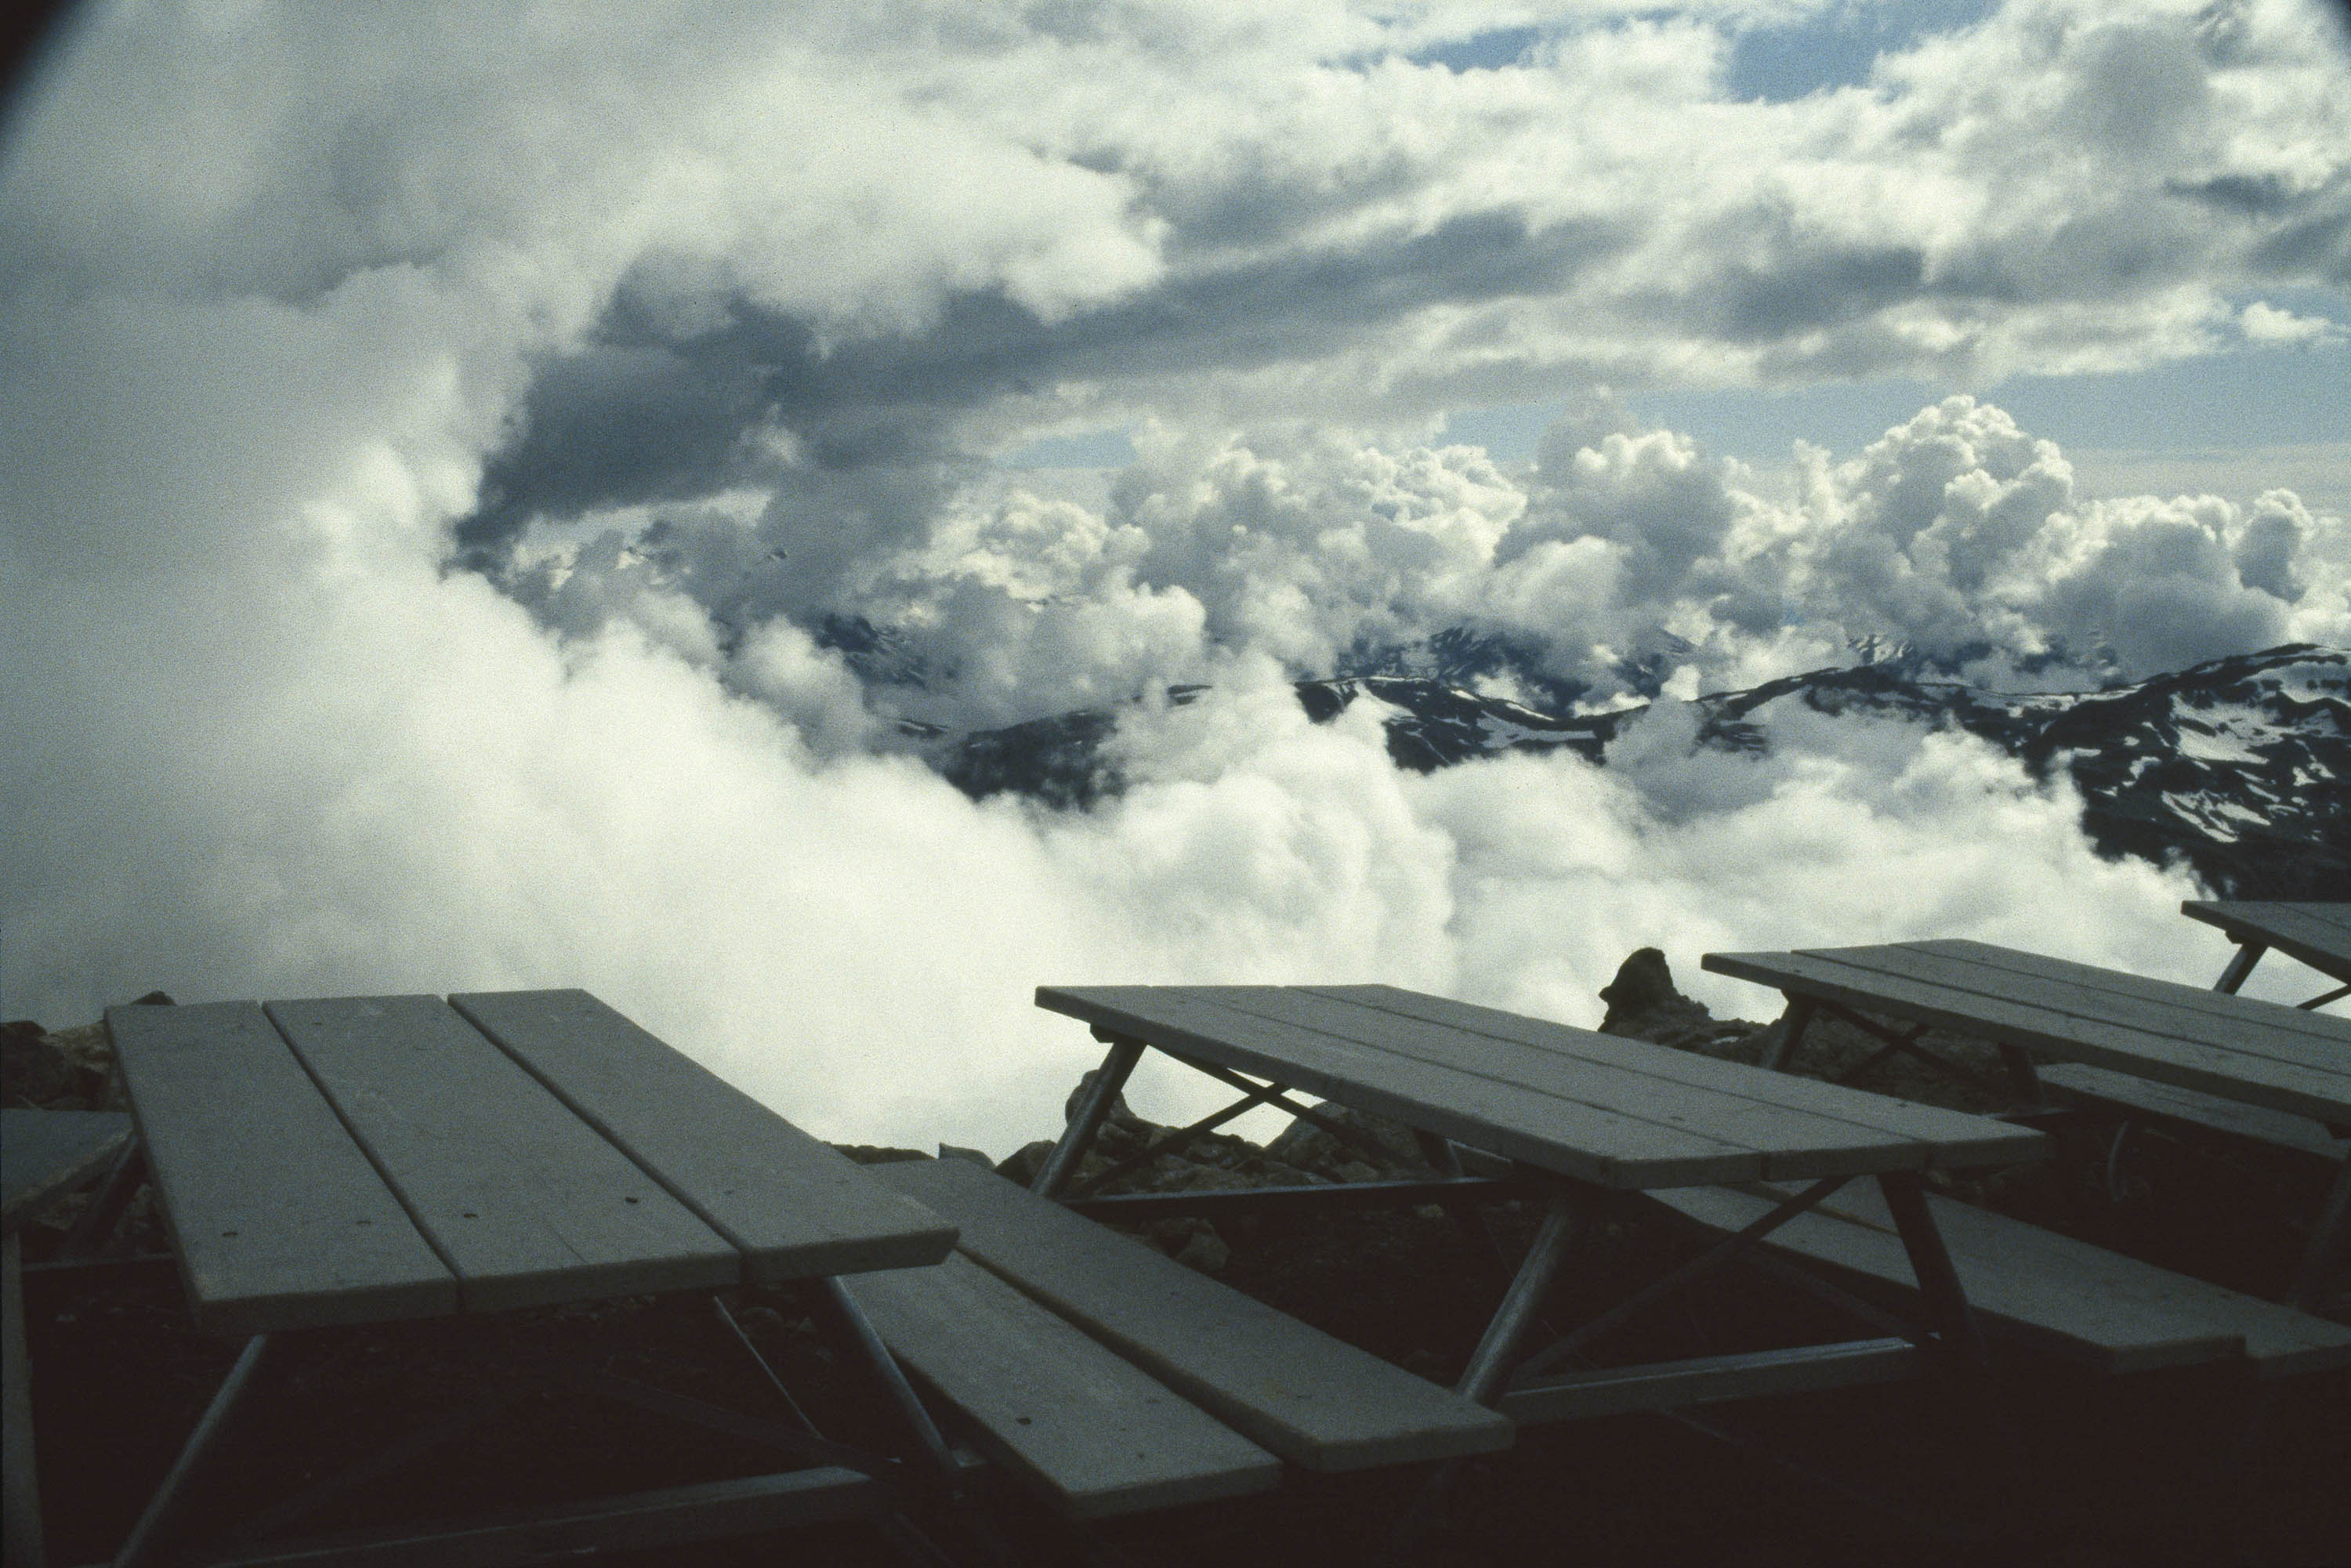 Picnic tables at the mountain top, Whistler, BC, Canada, 1991